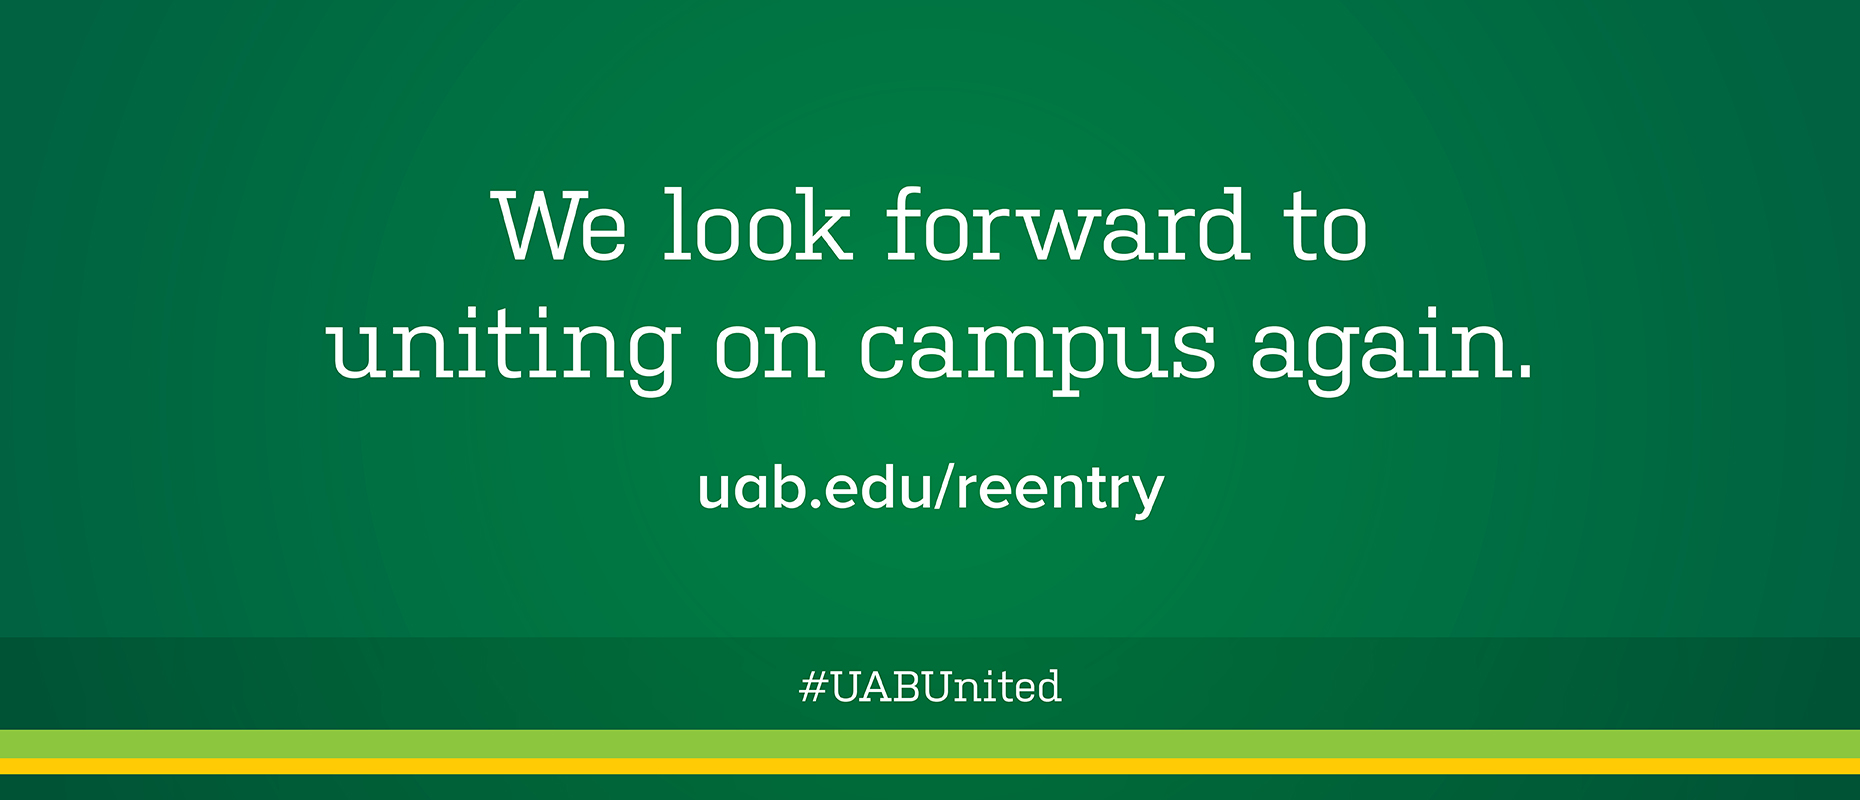 We look forward to uniting on campus again. uab.edu/reentry